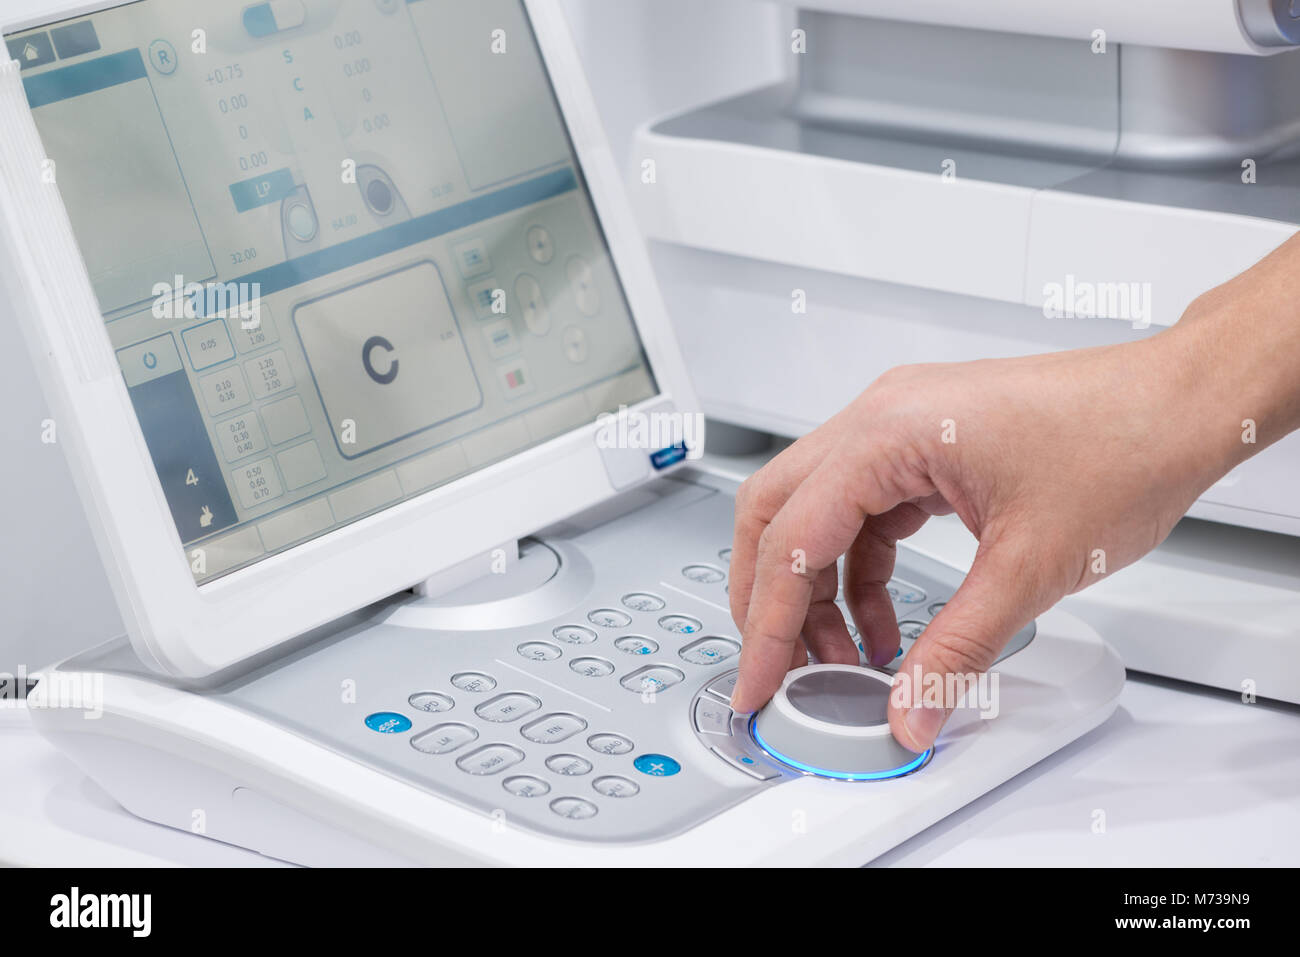 doctor oculist at work. diagnostic ophthalmologic equipment. medicine concept - Stock Image